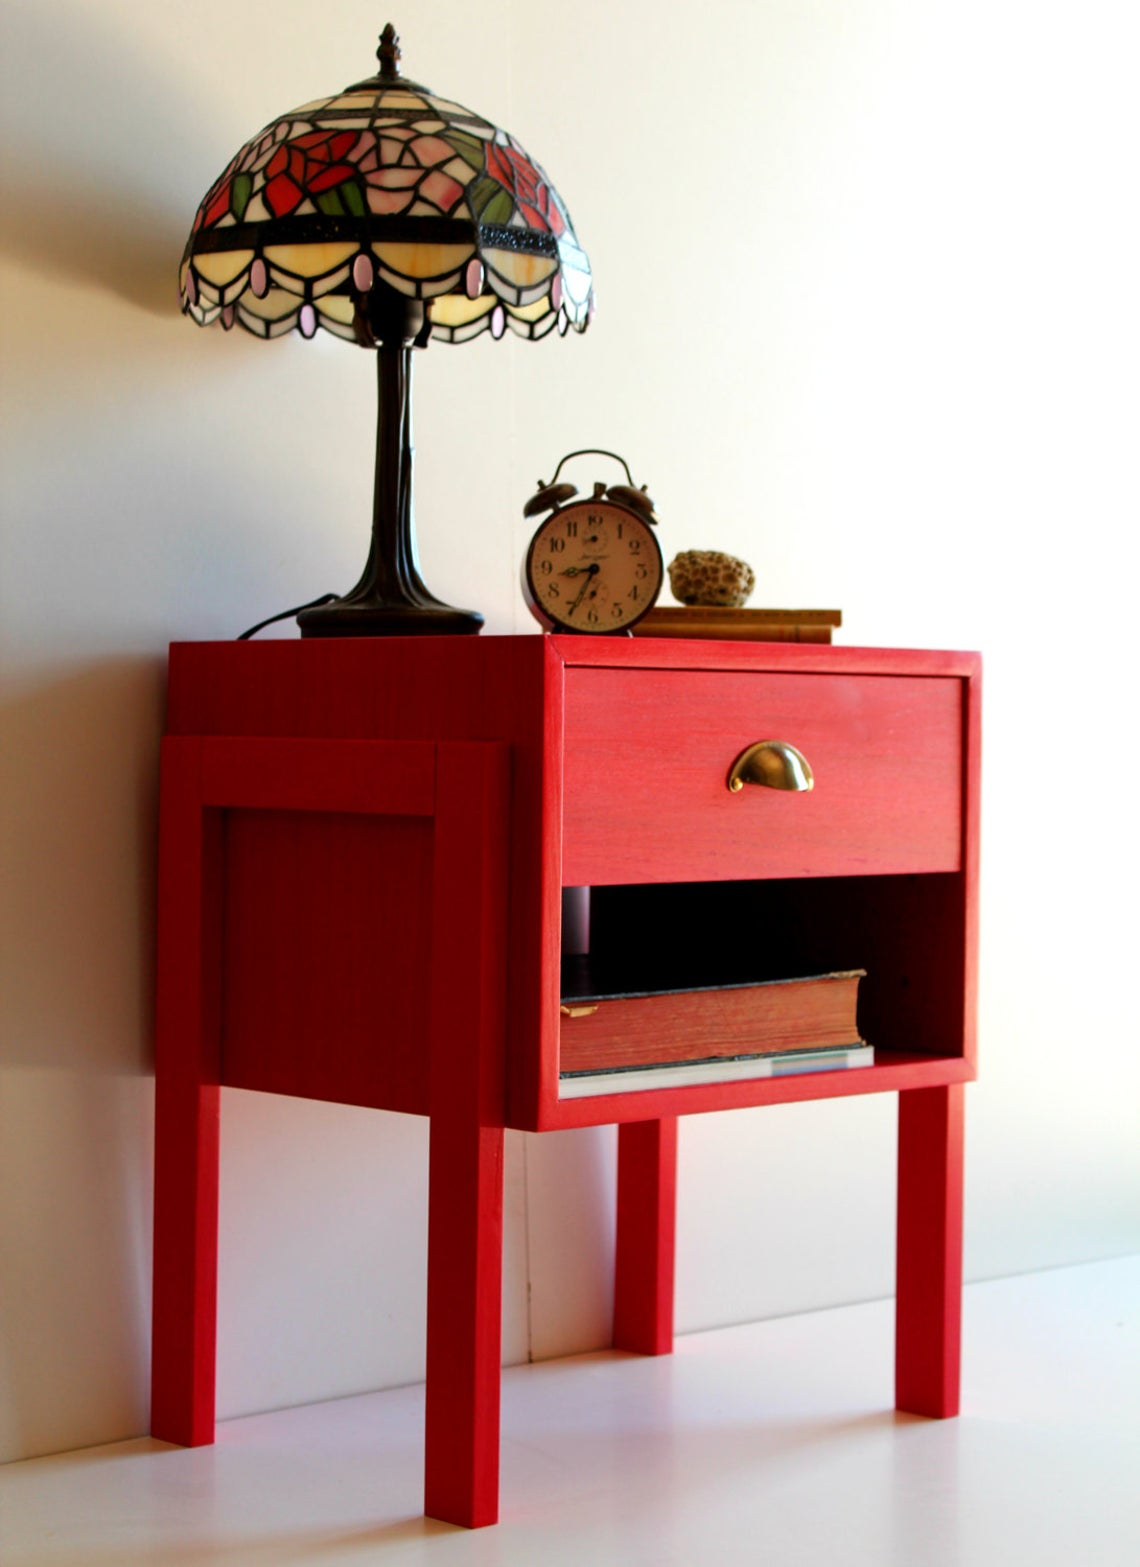 Lampshade and clock on top of a red drawer